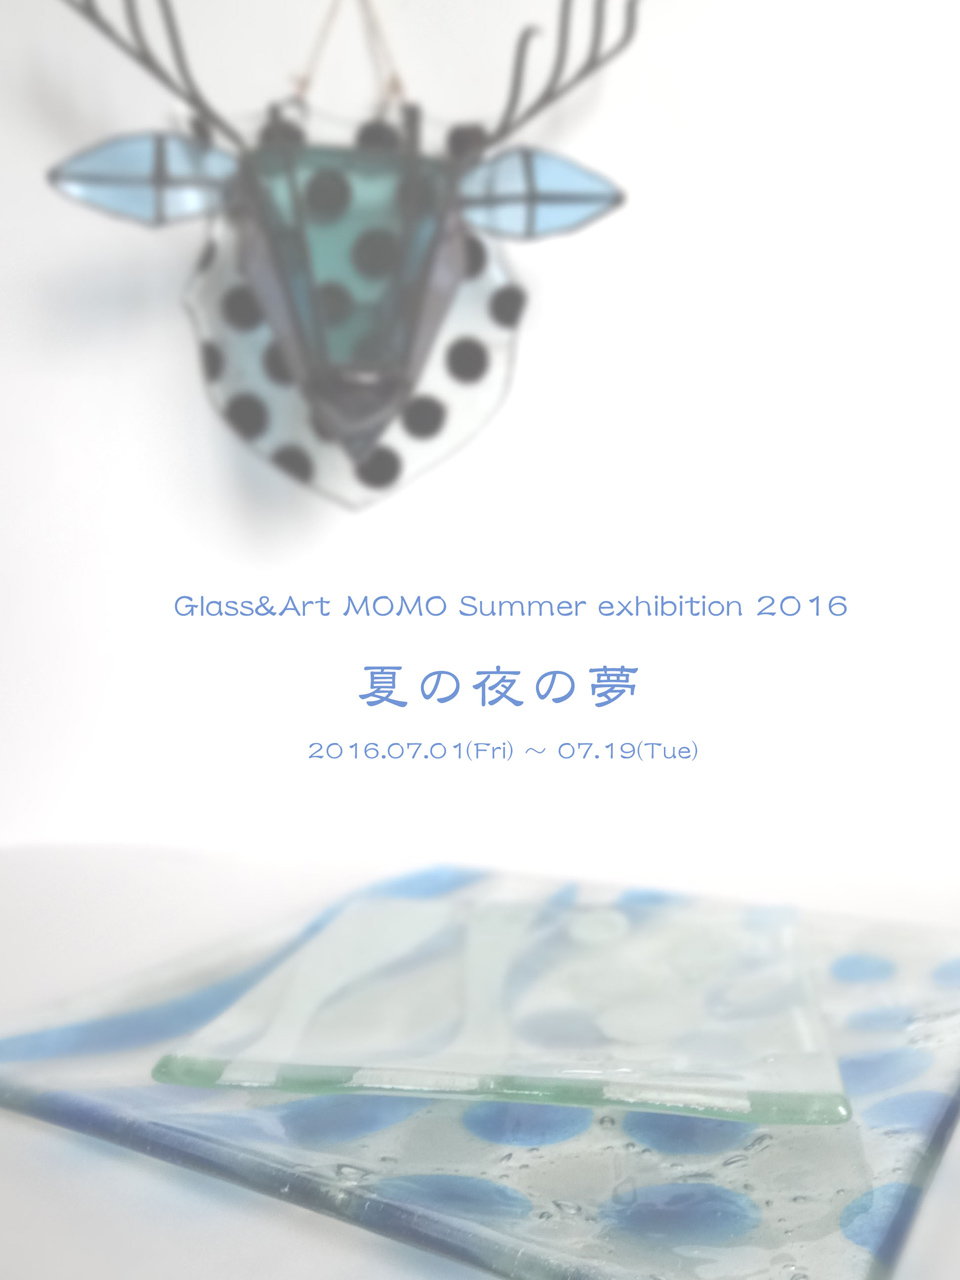 Glass & Art MOMO Summer exhibition 2016